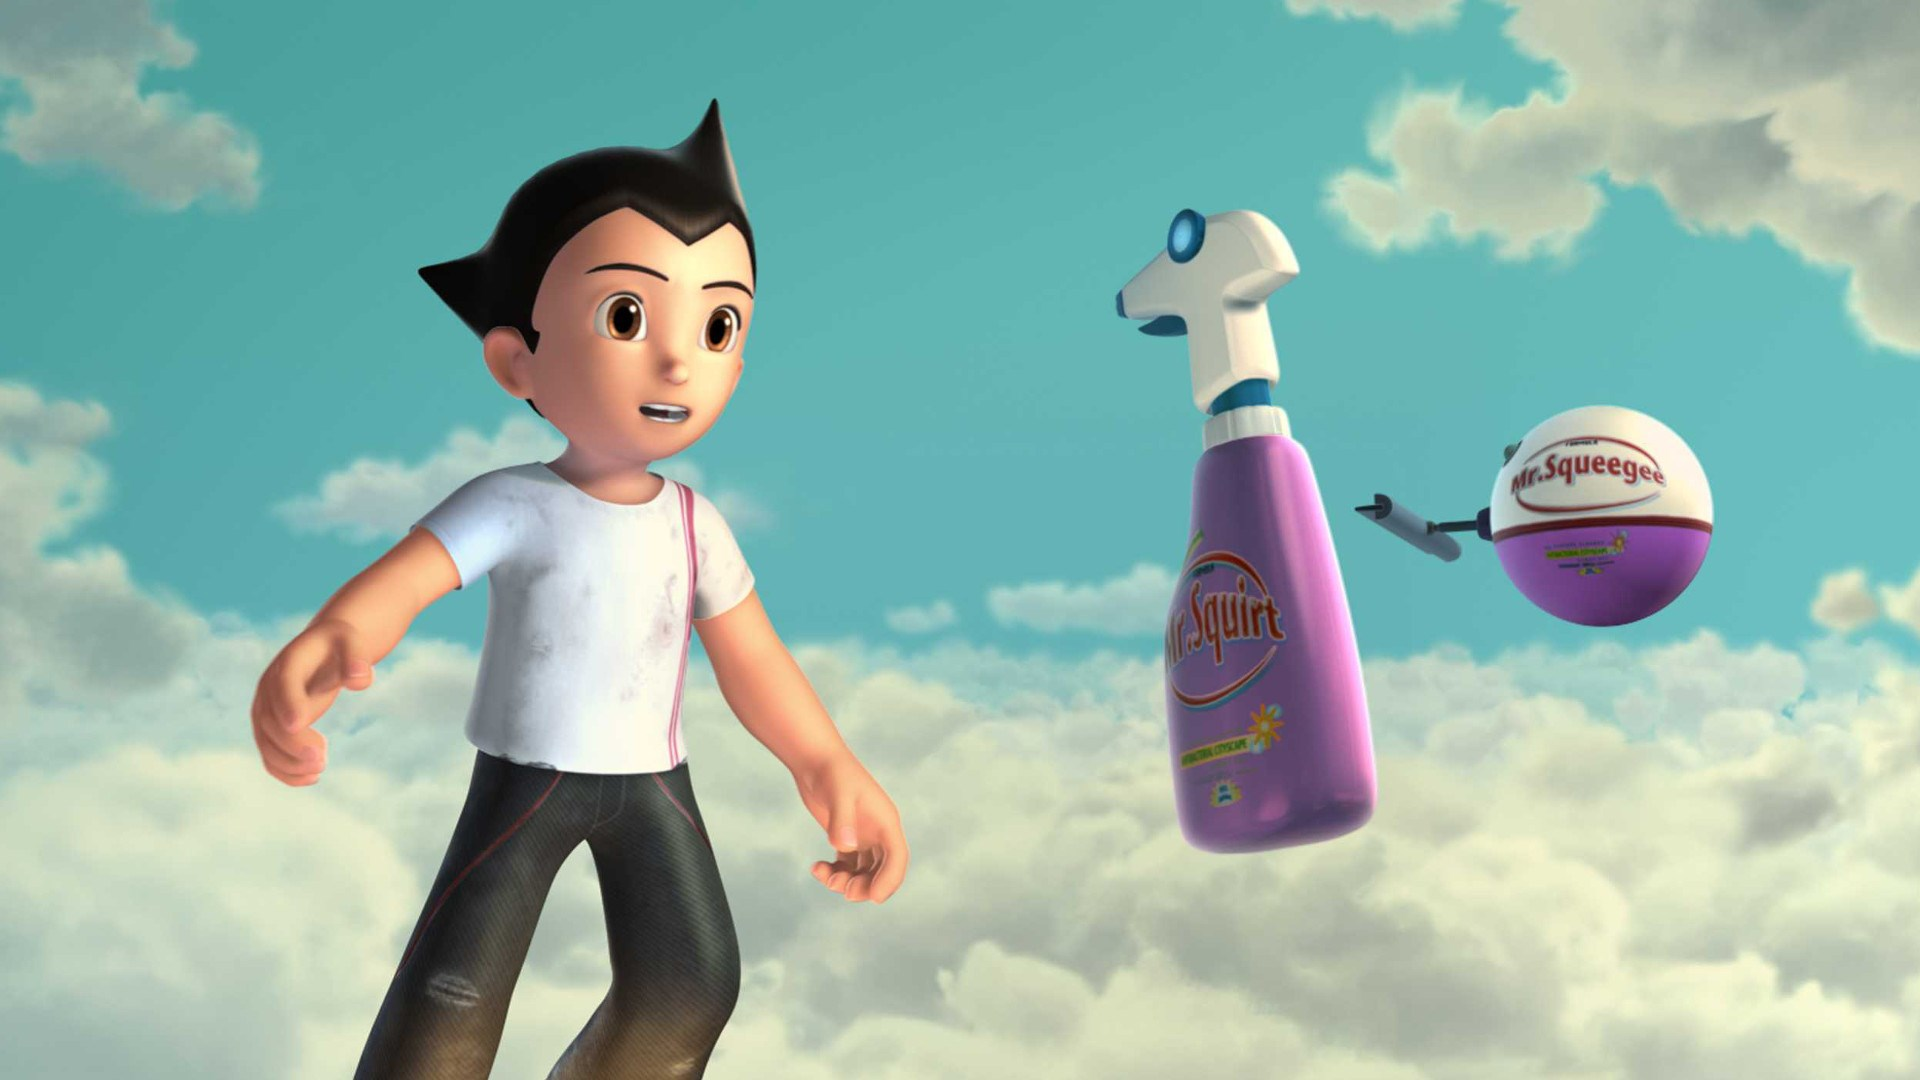 1920x1080-px-computer-for-astro-boy-by-Haven-Leapman-for-pocketfullofgrace-com-wallpaper-wp340879